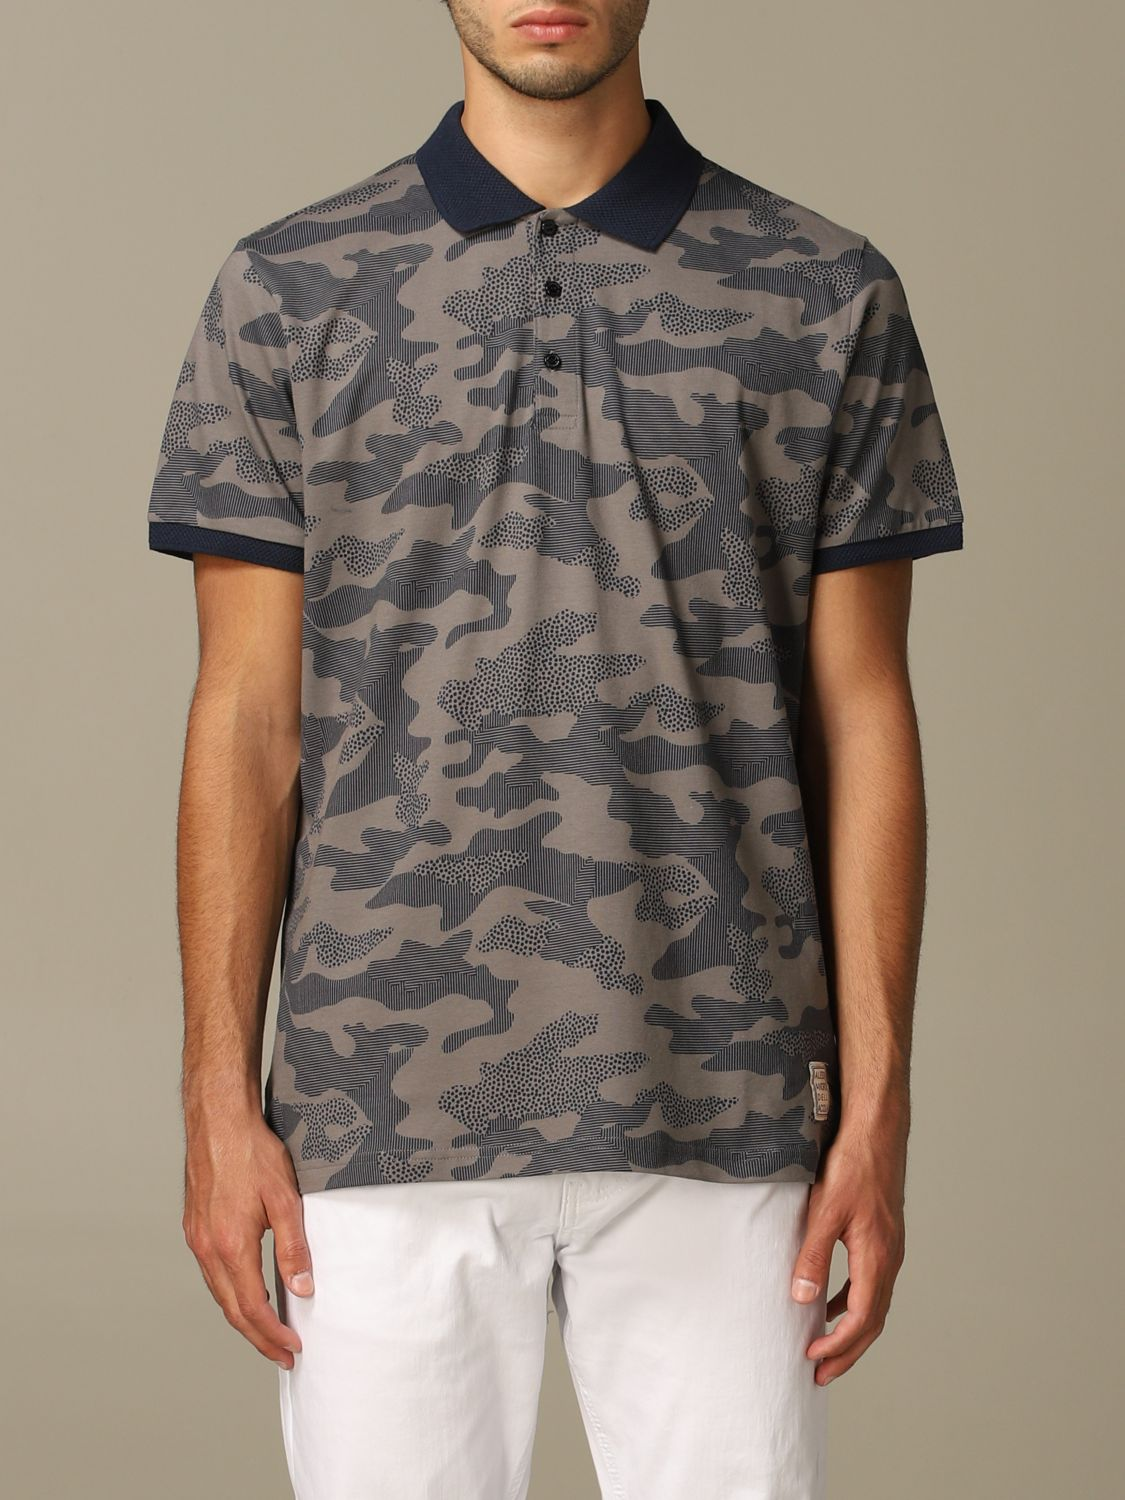 Sweater Alessandro Dell'acqua: Alessandro Dell'acqua polo shirt in camouflage patterned cotton grey 1